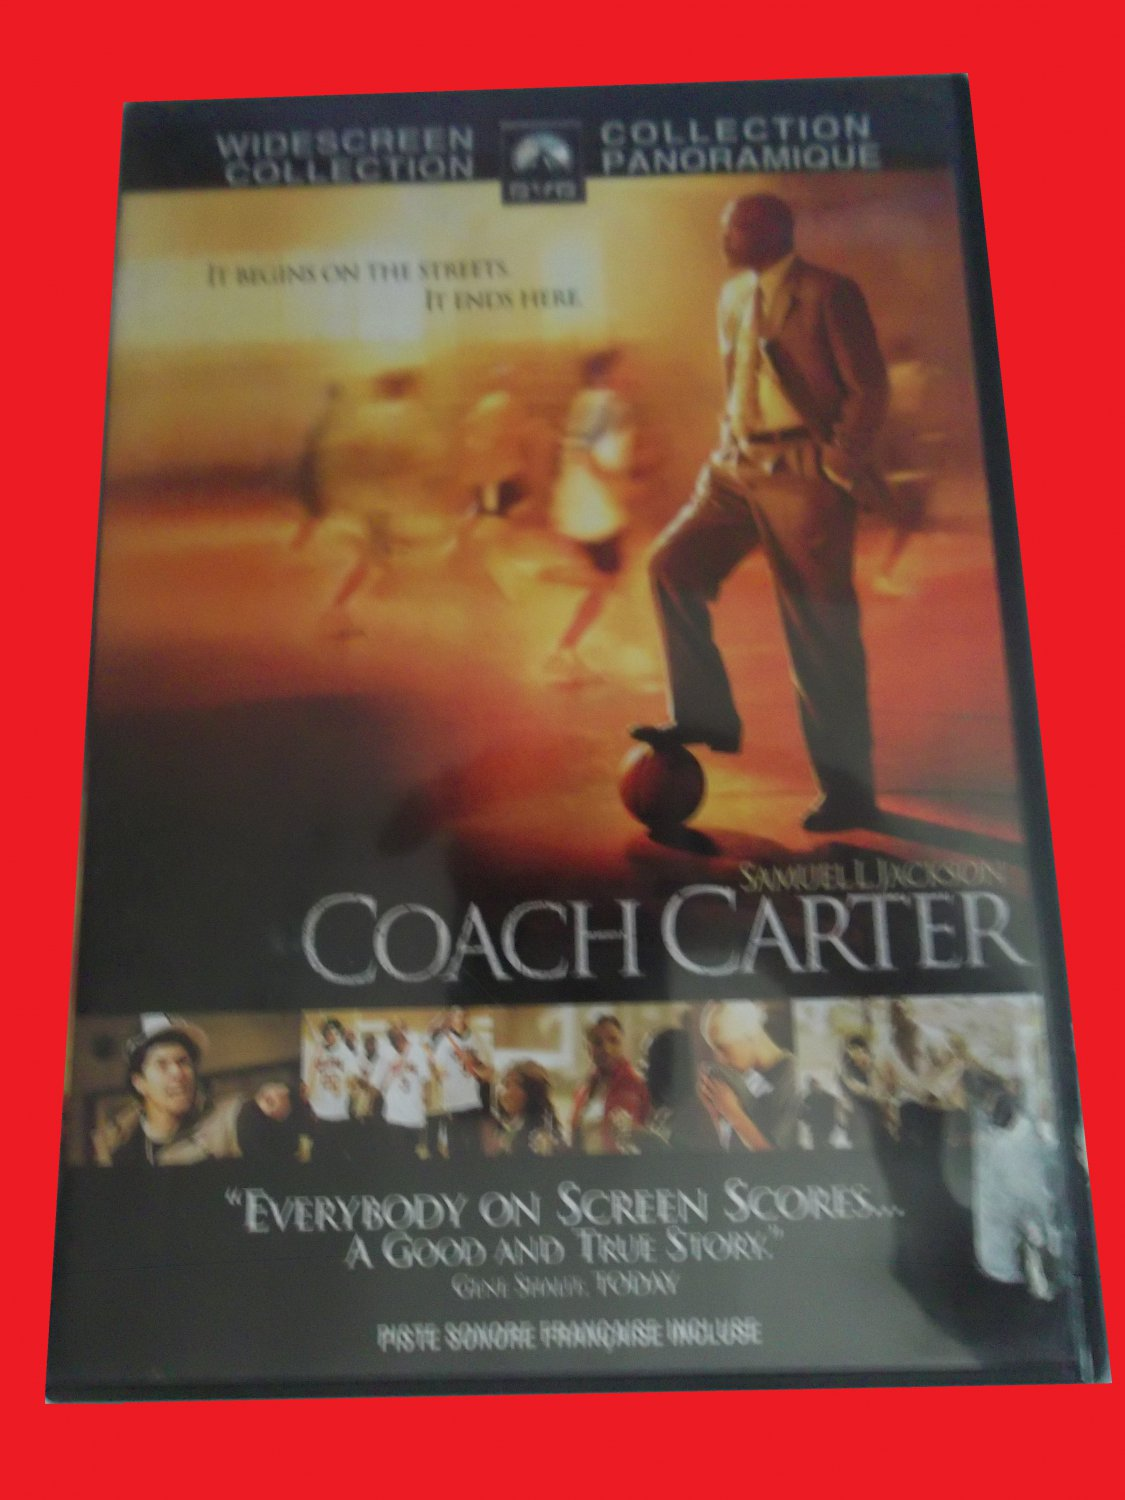 COACH CARTER (FREE DVD & FAST SHIPPING) SAMUEL L JACKSON (TRUE STORY/SPORTS/ACTION/DRAMA)